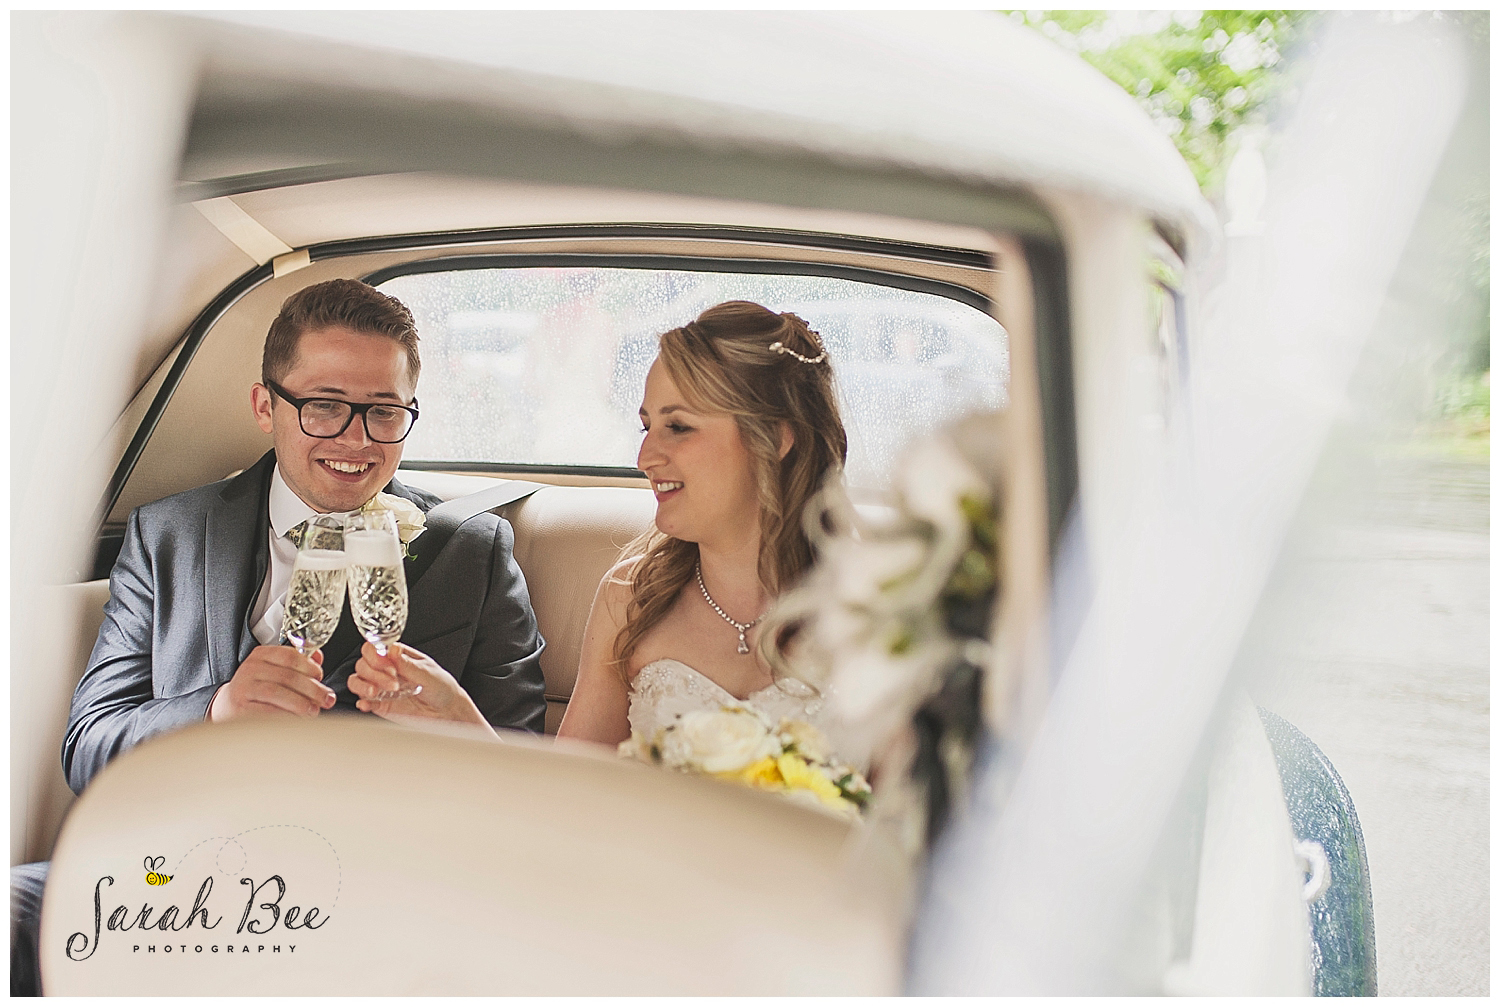 wedding photography with sarah bee photography, Peruga woodheys glossop, documentory photography wedding photographer_0197 copy.jpg